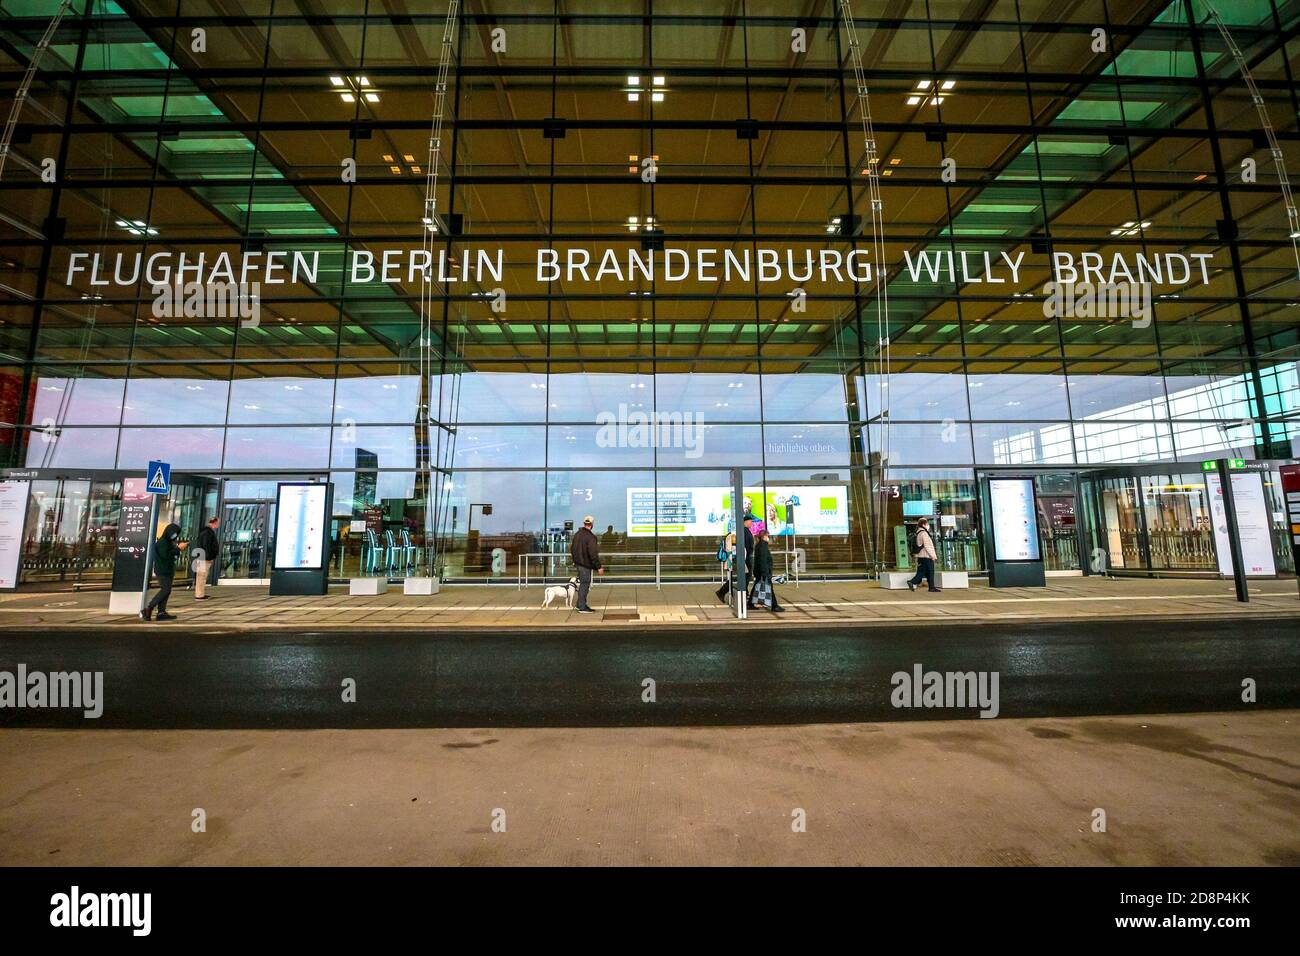 Exterior of Terminal 1 of newly opened Berlin Brandenburg International Airport (BER), or Flughafen Berlin Brandenburg Willy Brandt. Stock Photo